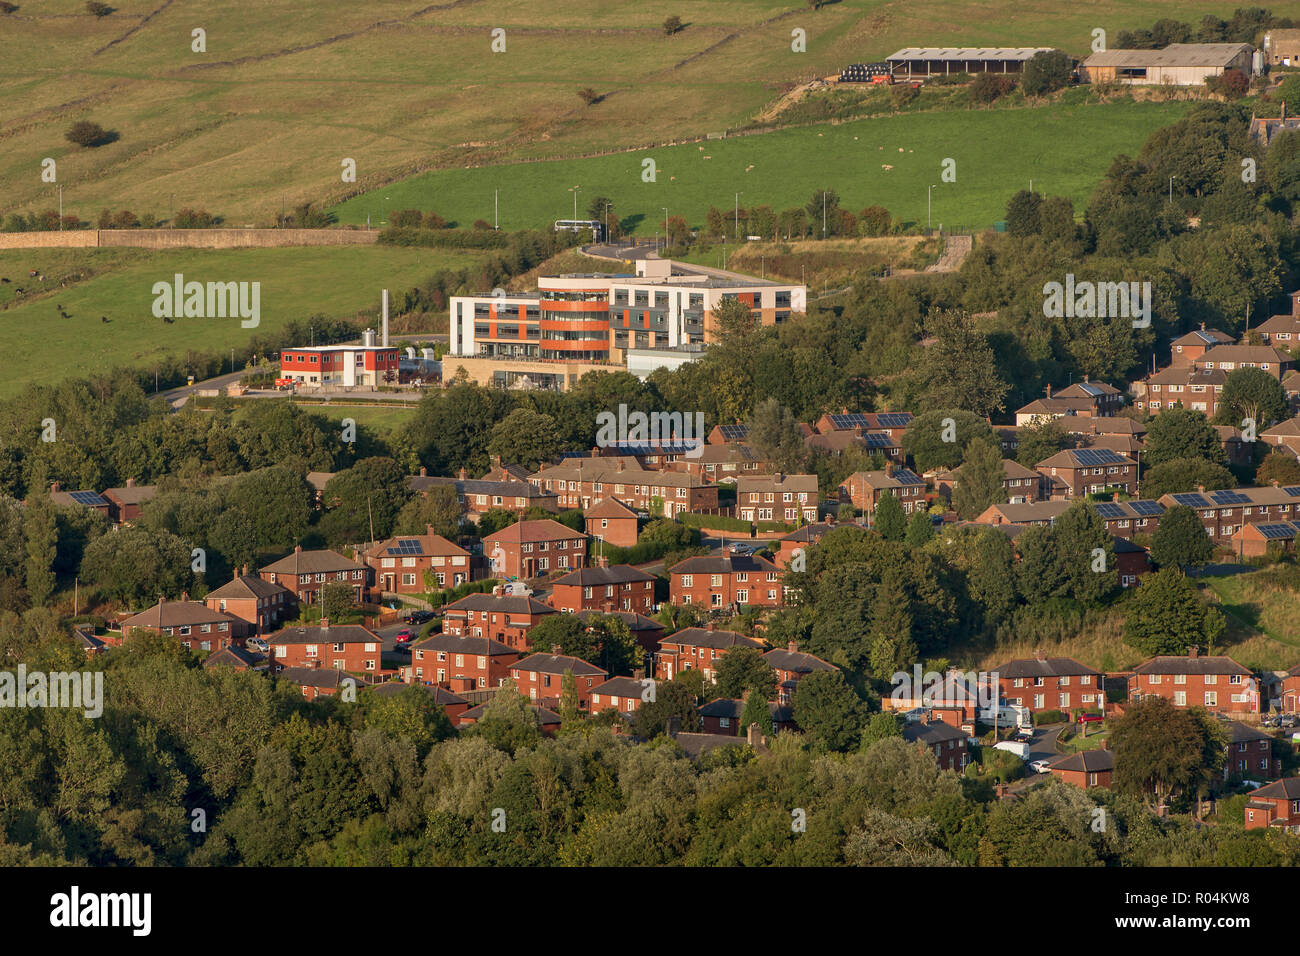 General view of houses around Mossley Hollins High School in Mossley, Greater Manchester - Stock Image